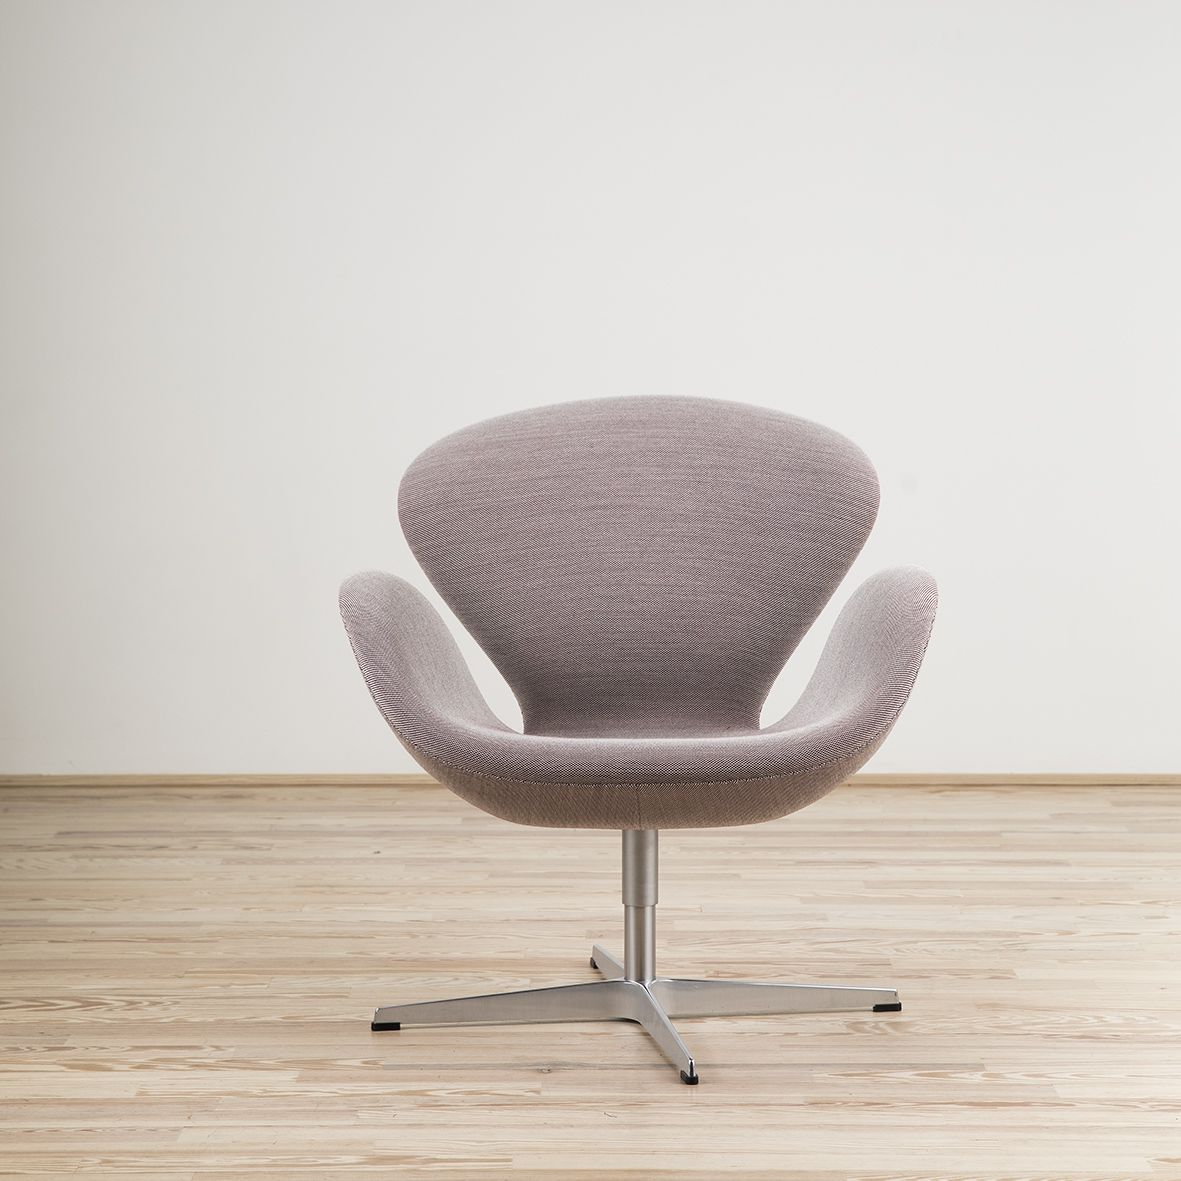 Swan armchair designed by Arne Jacobsen and edited by Fritz Hansen